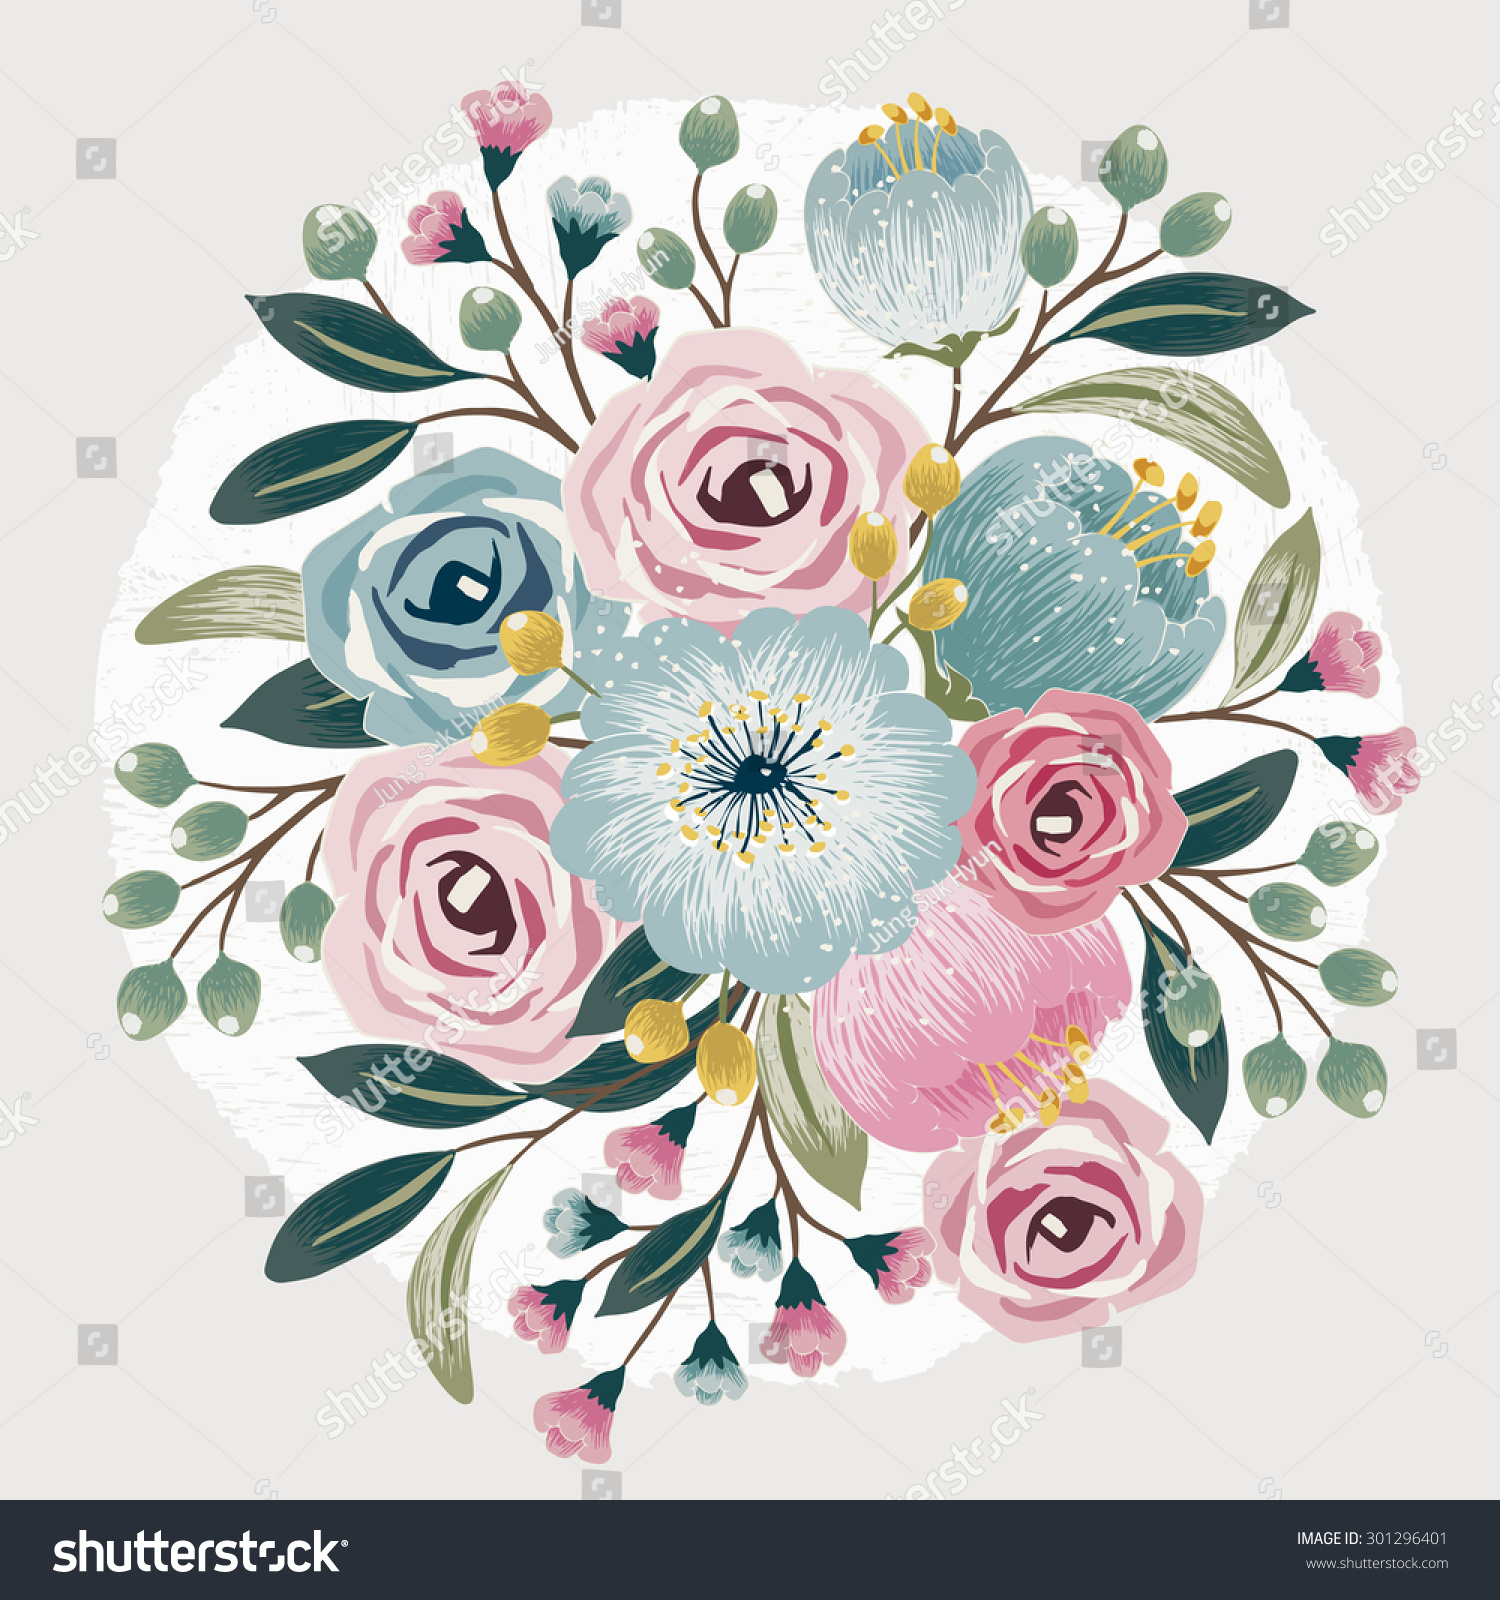 Vector illustration beautiful floral bouquet spring stock vector hd vector illustration of a beautiful floral bouquet with spring flowers for invitations and birthday cards izmirmasajfo